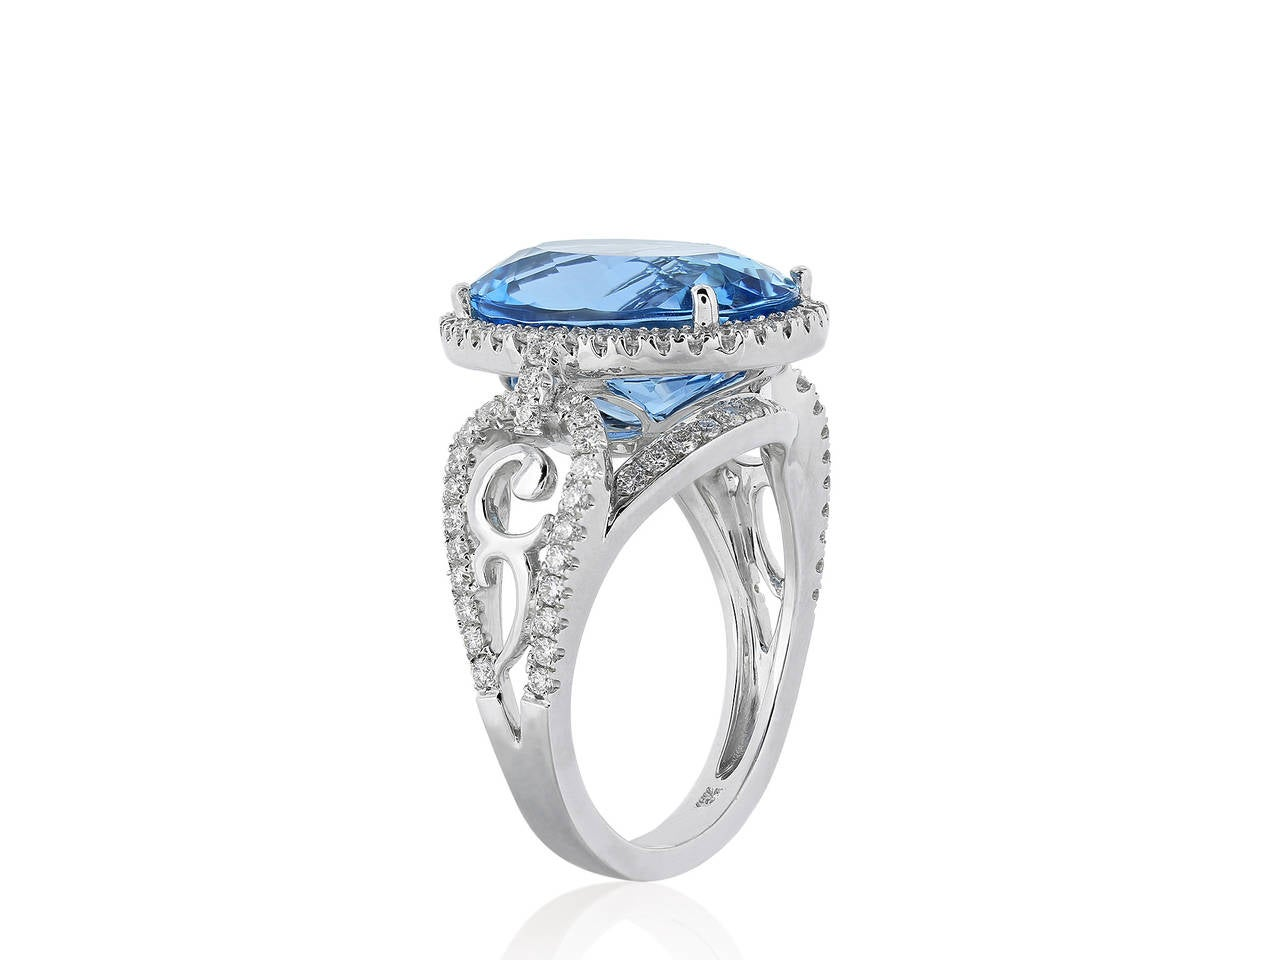 18 karat white gold aquamarine and diamond ring. The ring features 1 oval cut aquamarine having a weight of 6.70 carats. The center stone is surrounded with a halo of full cut diamond and diamond accents on the band having a total weight of .77